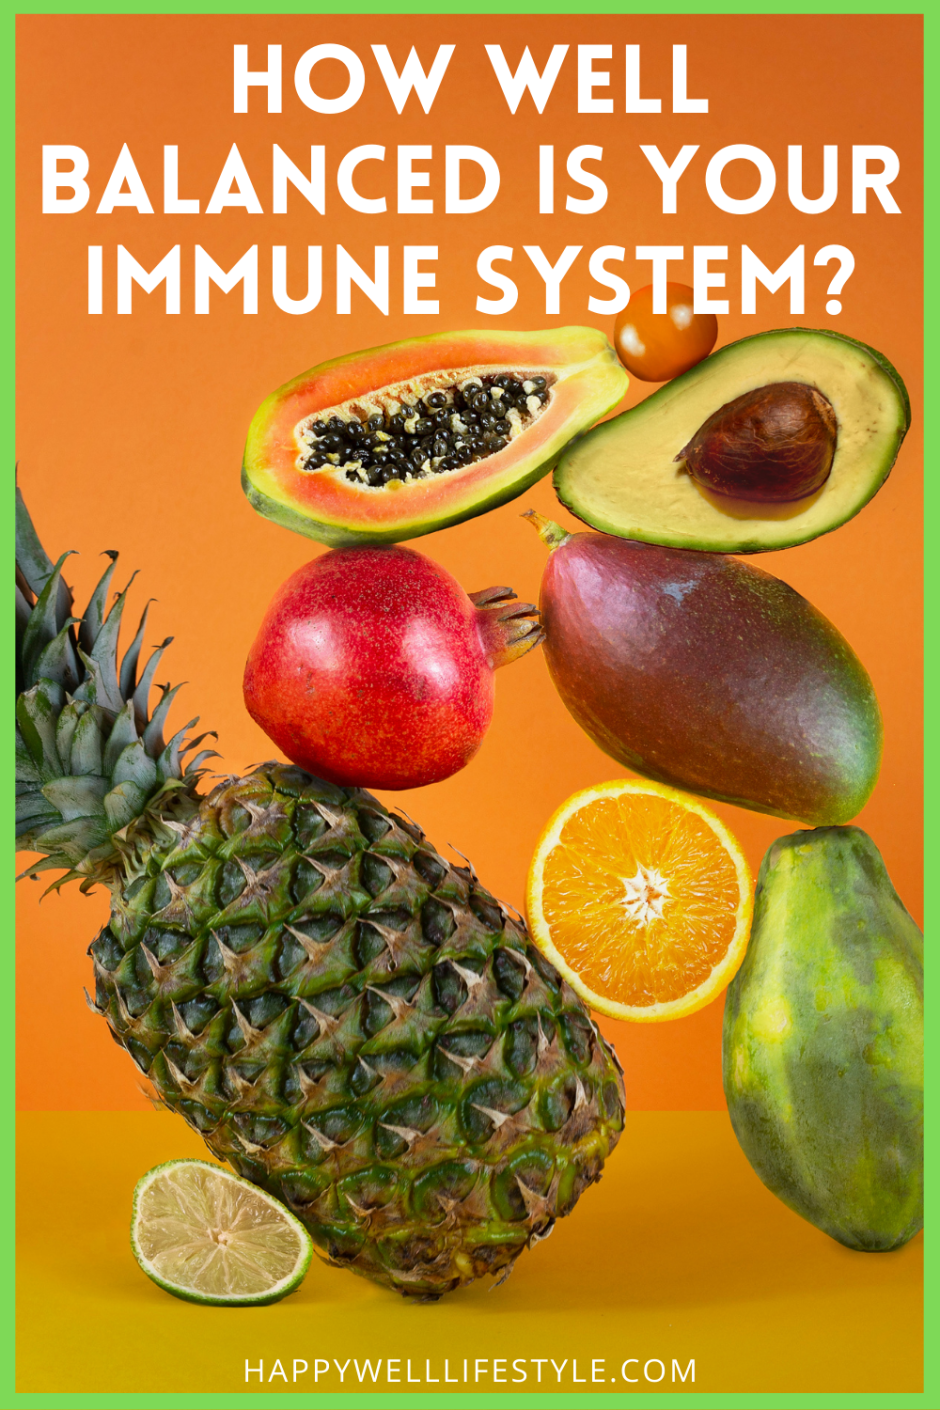 How Well Balanced is your immune system?